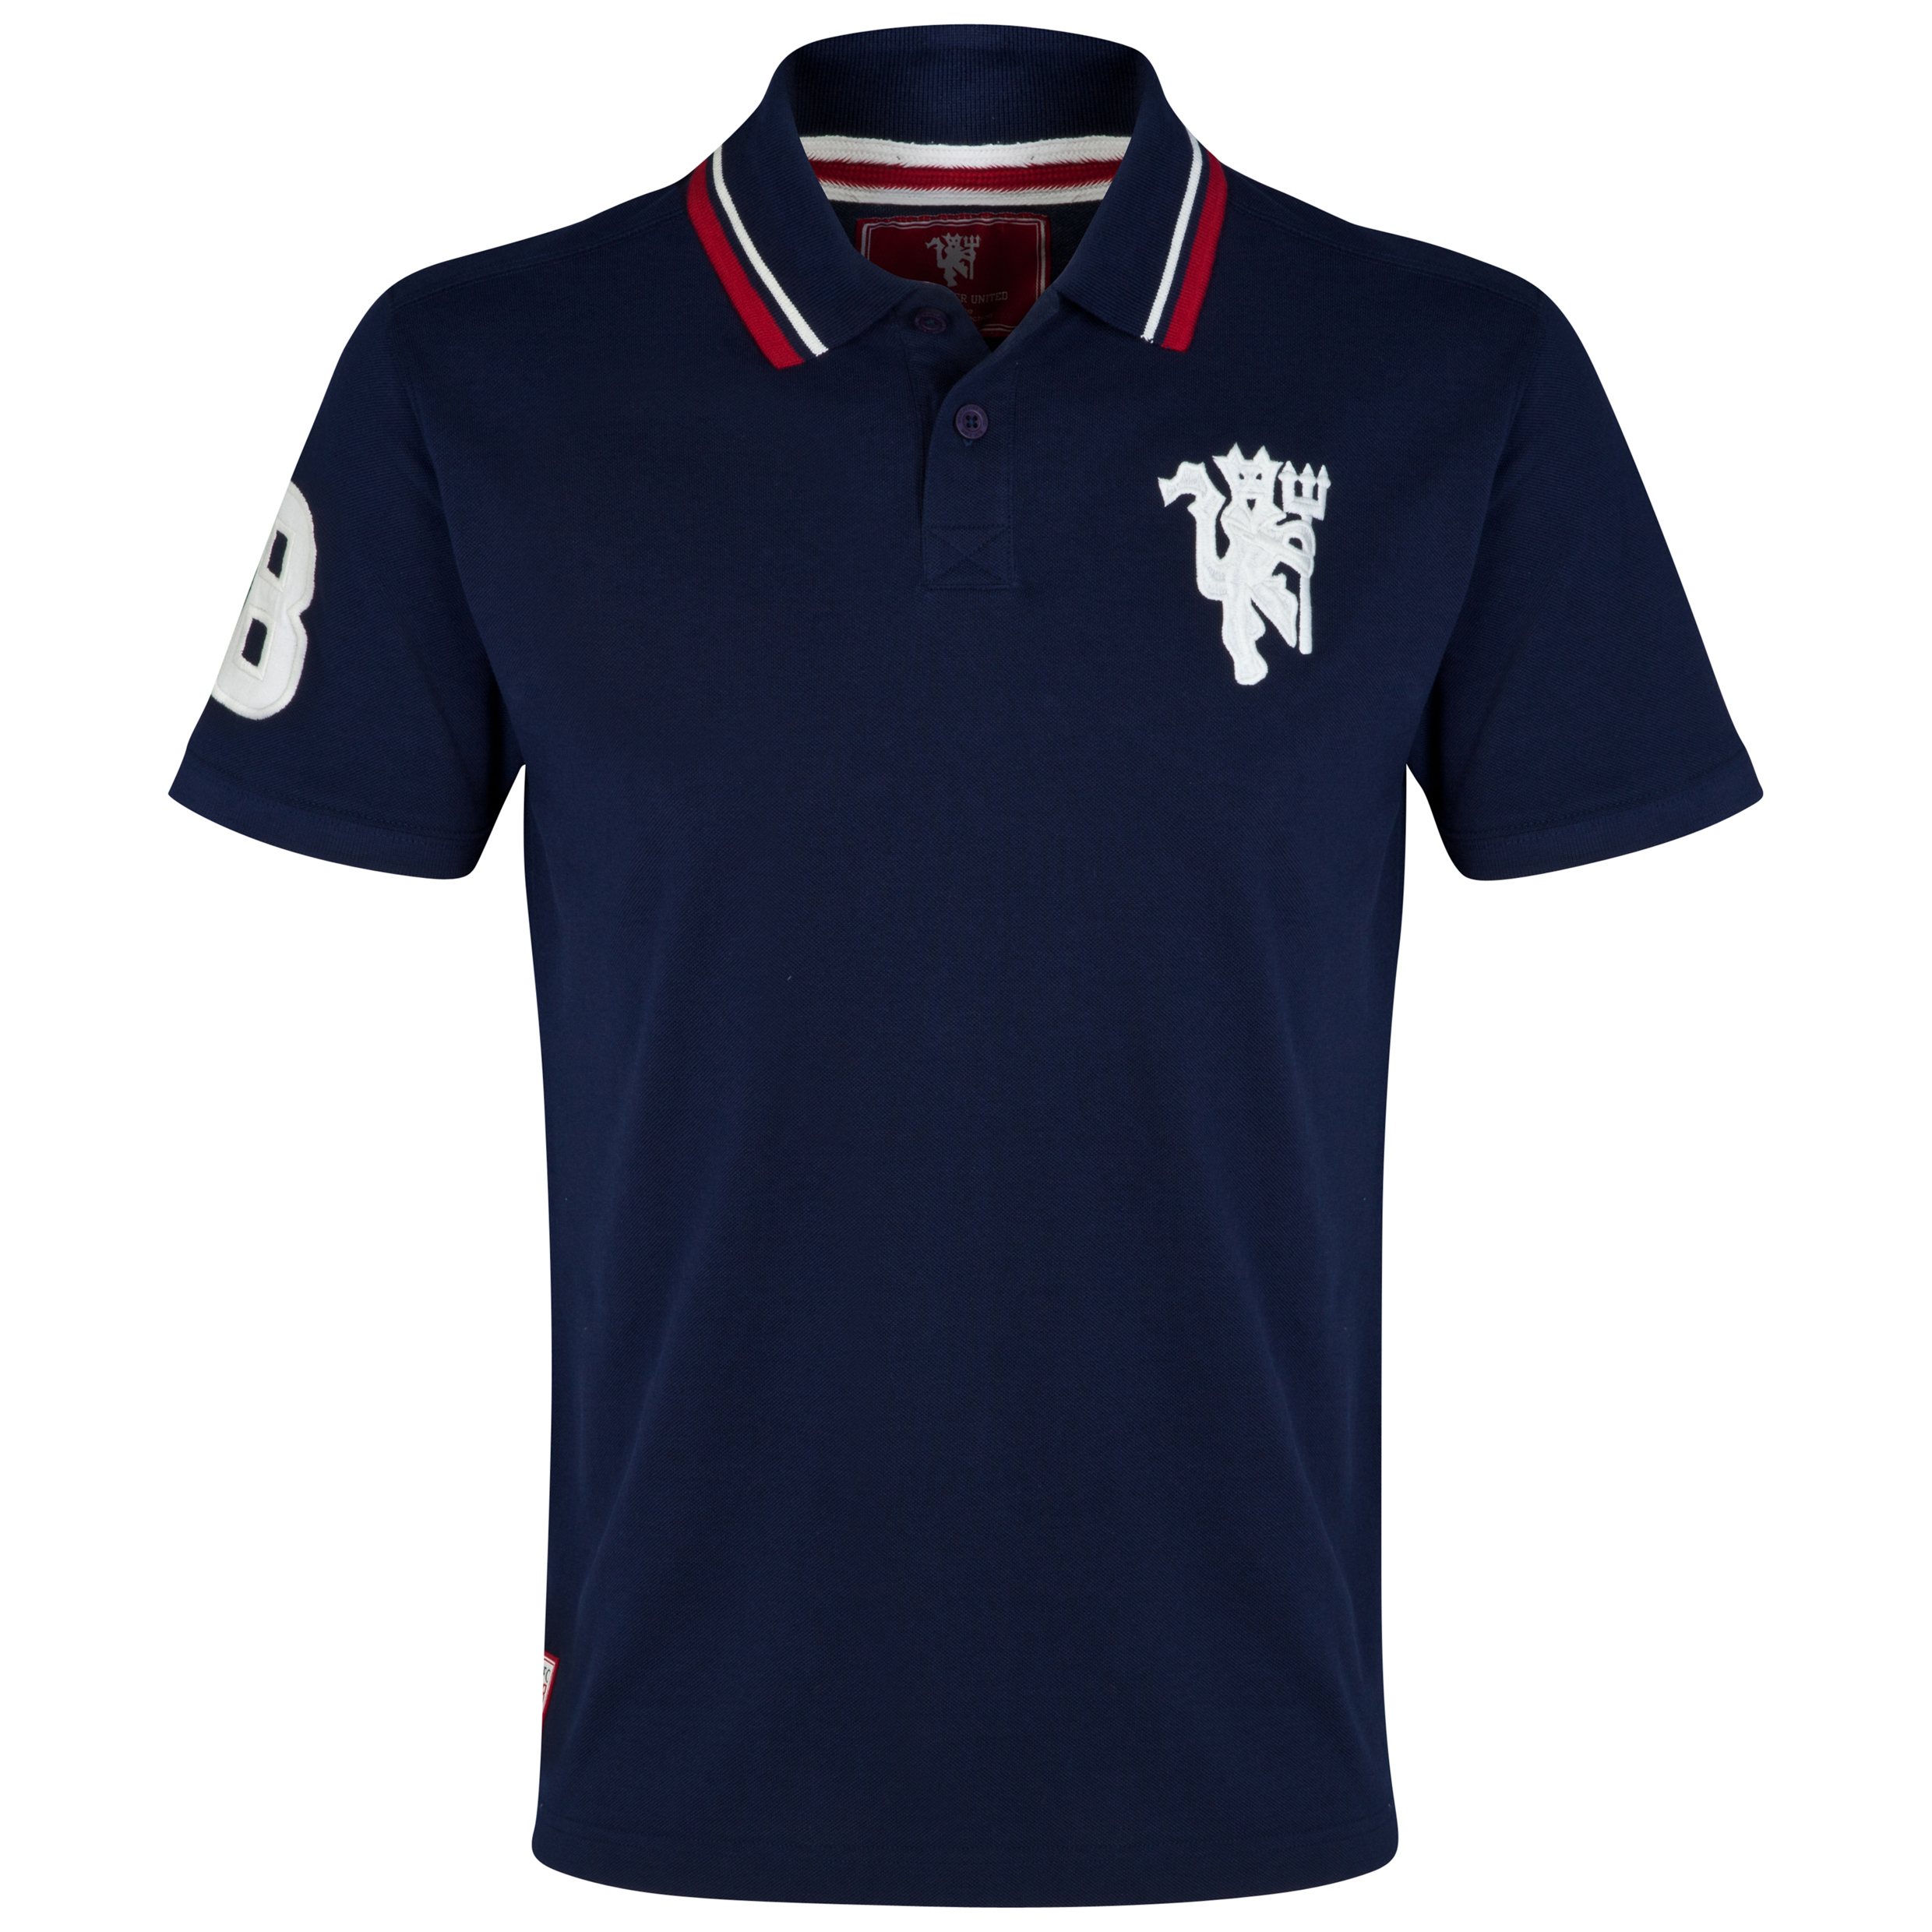 Manchester United Heritage Devil Polo Shirt - Mens